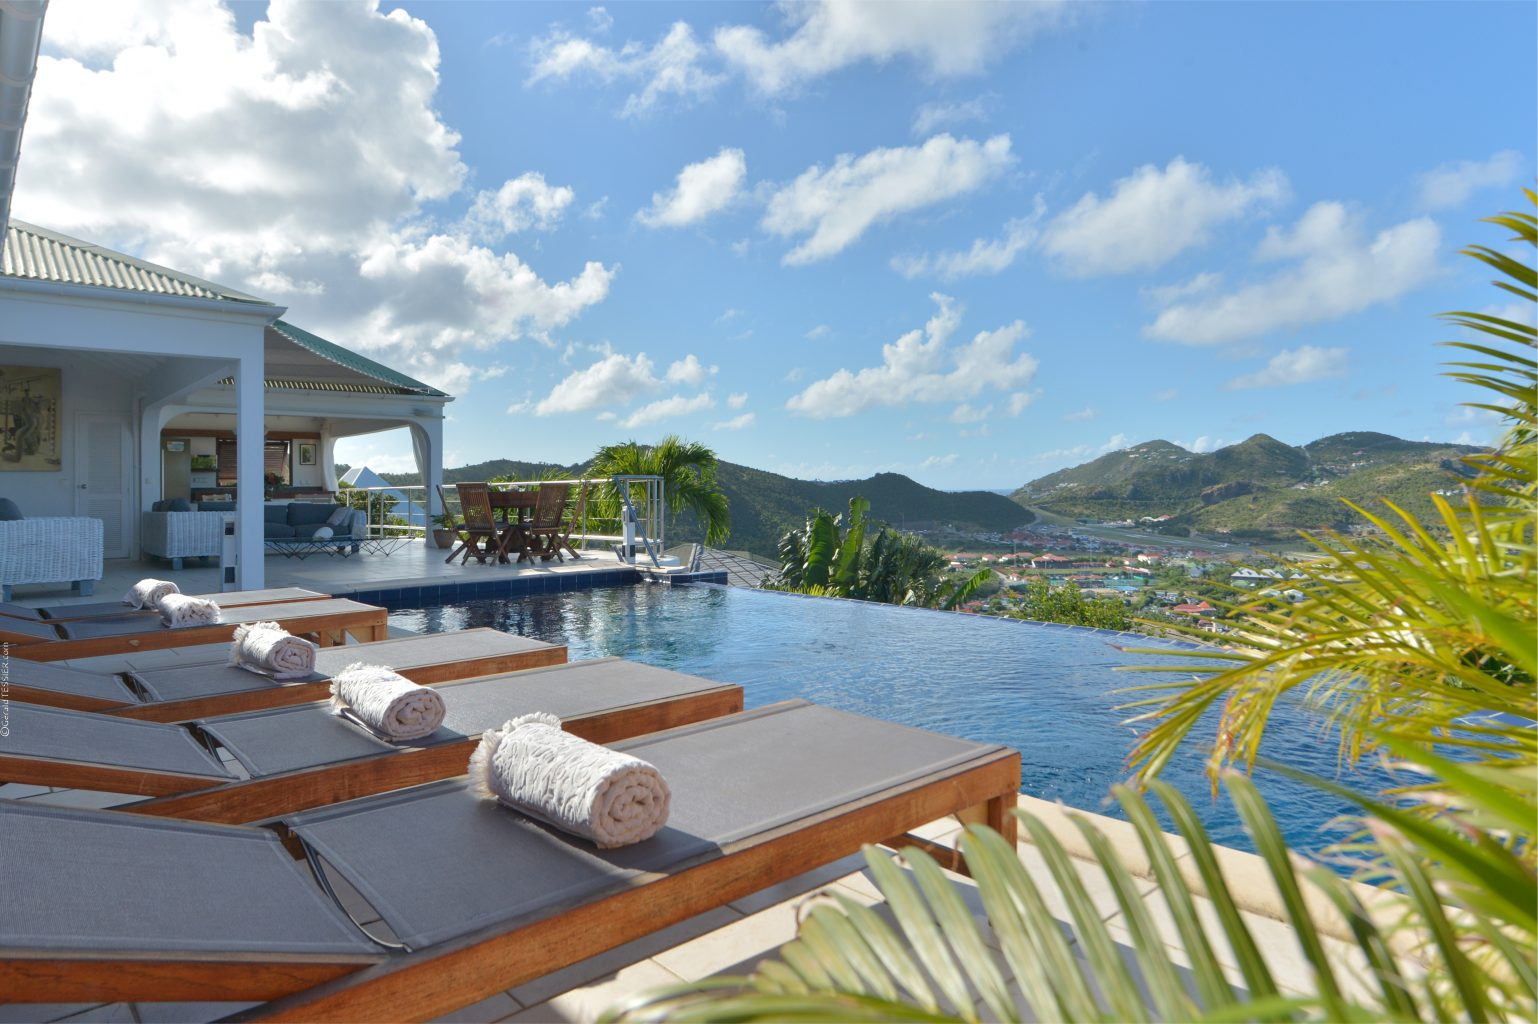 Villa Mystic - Seaview Villa for Rent St Barth with Panoramic View from Each Room - Pool